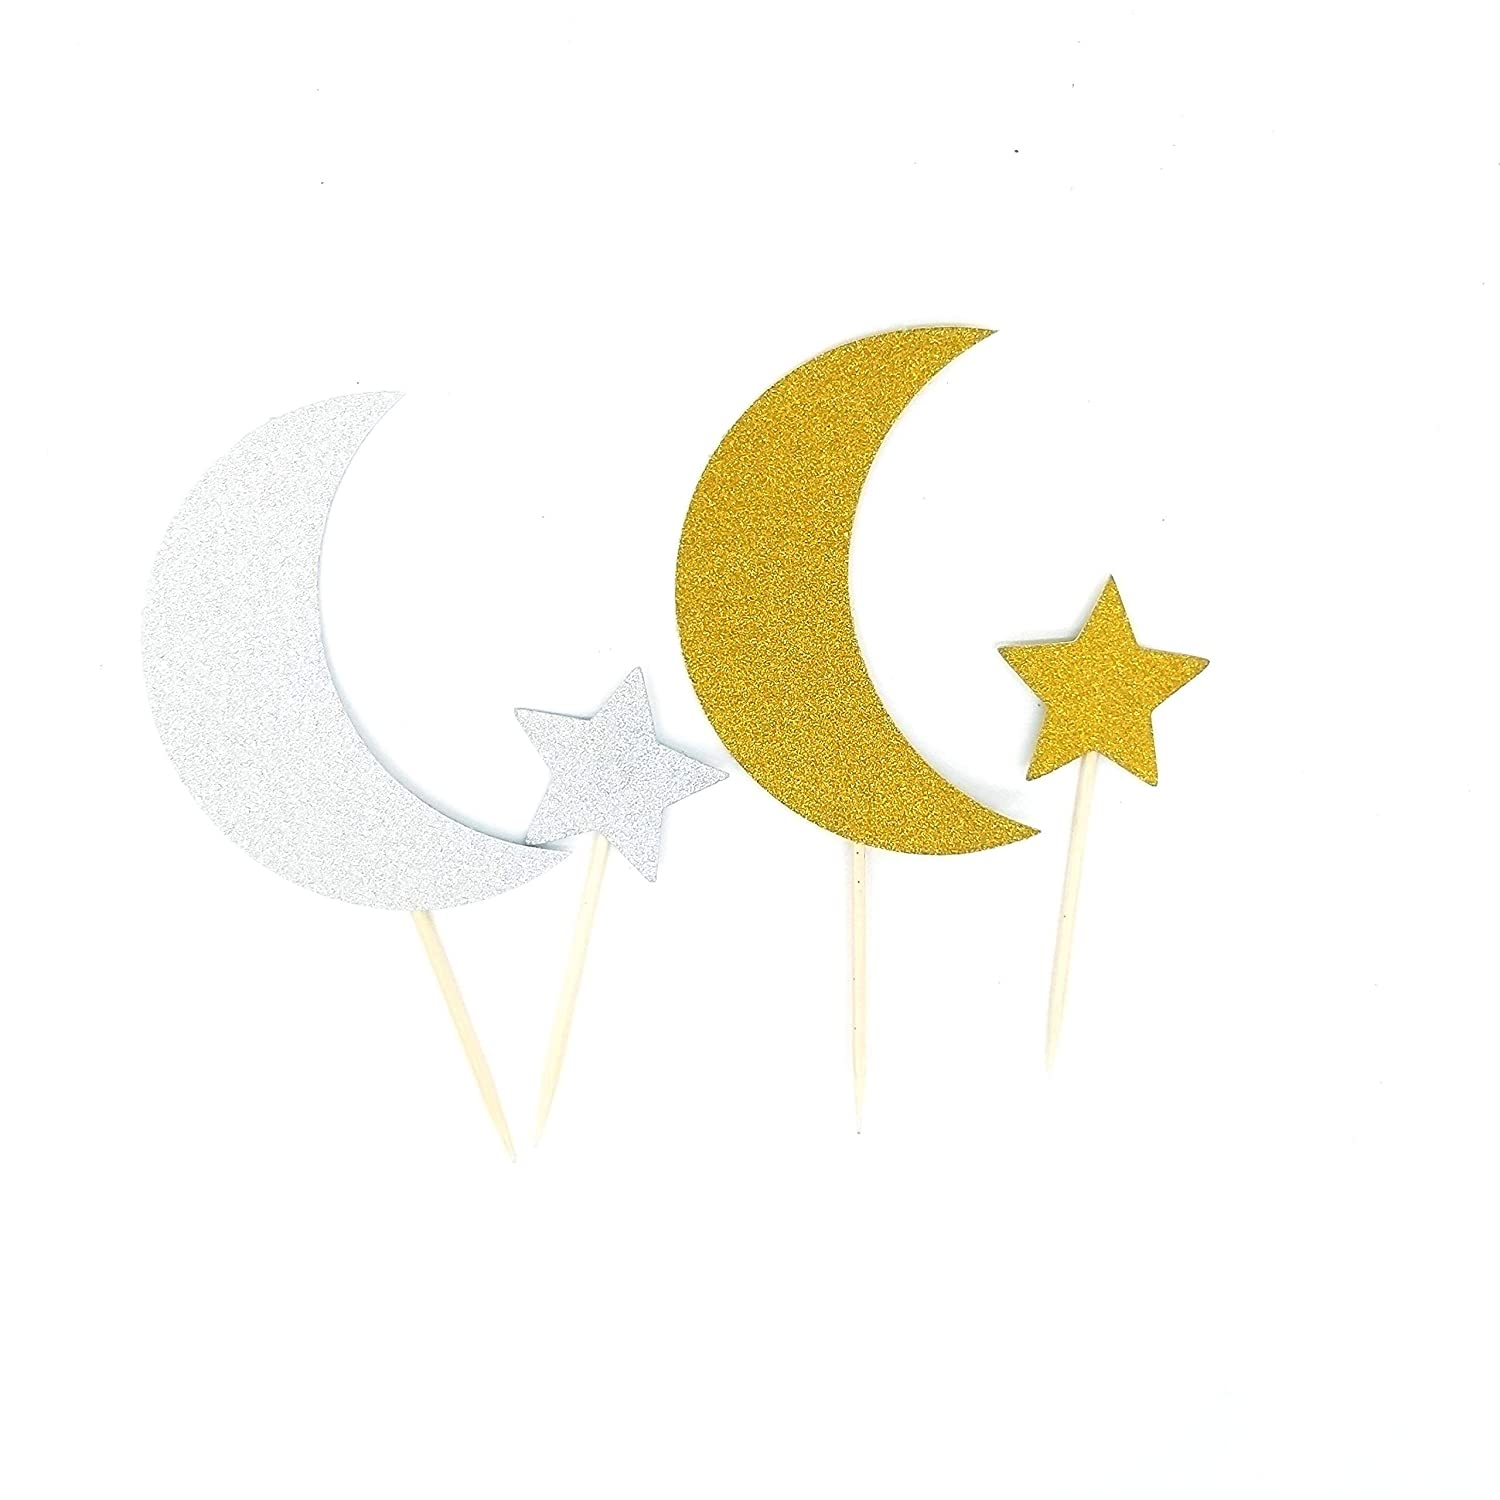 Double Sided Crescent Moon and Star Twinkle Twinkle Little Star Cupcake Toppers Cake Toppers Party Decoration DIY Shaped Baby Shower or Birthday Party Set of 24